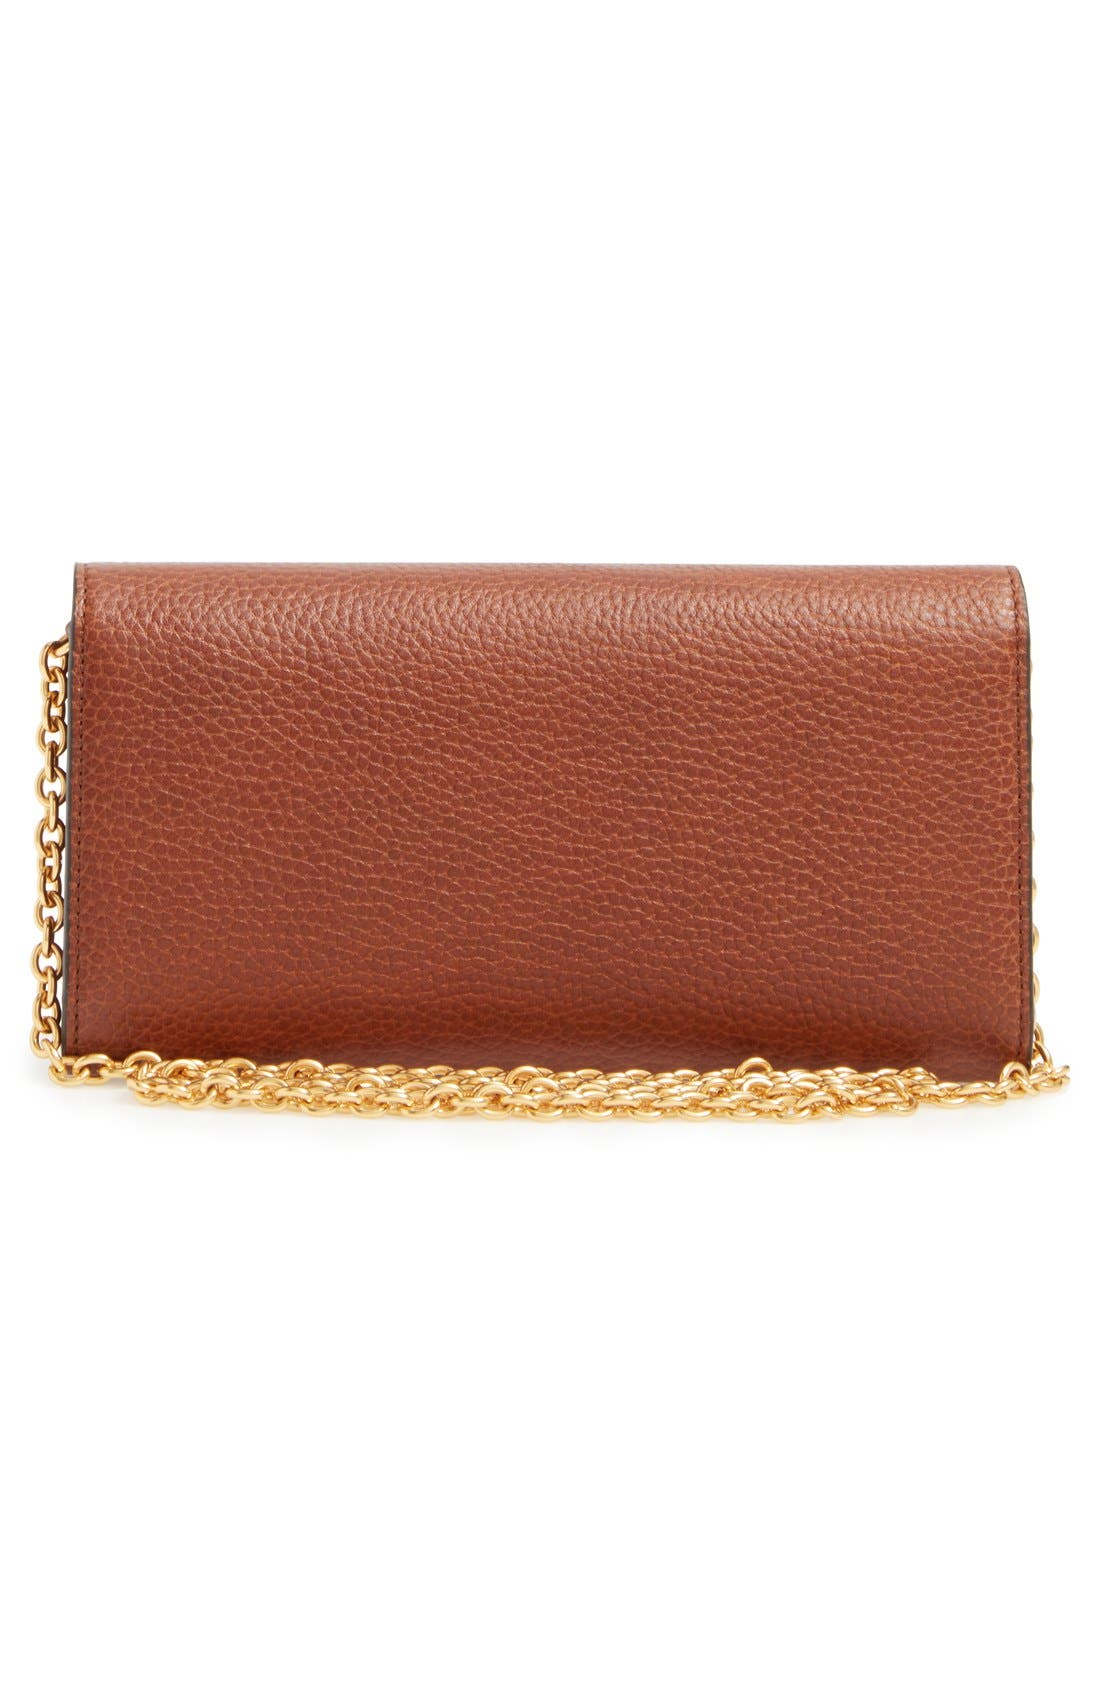 'Continental - Classic' Convertible Leather Clutch,                             Alternate thumbnail 4, color,                             200